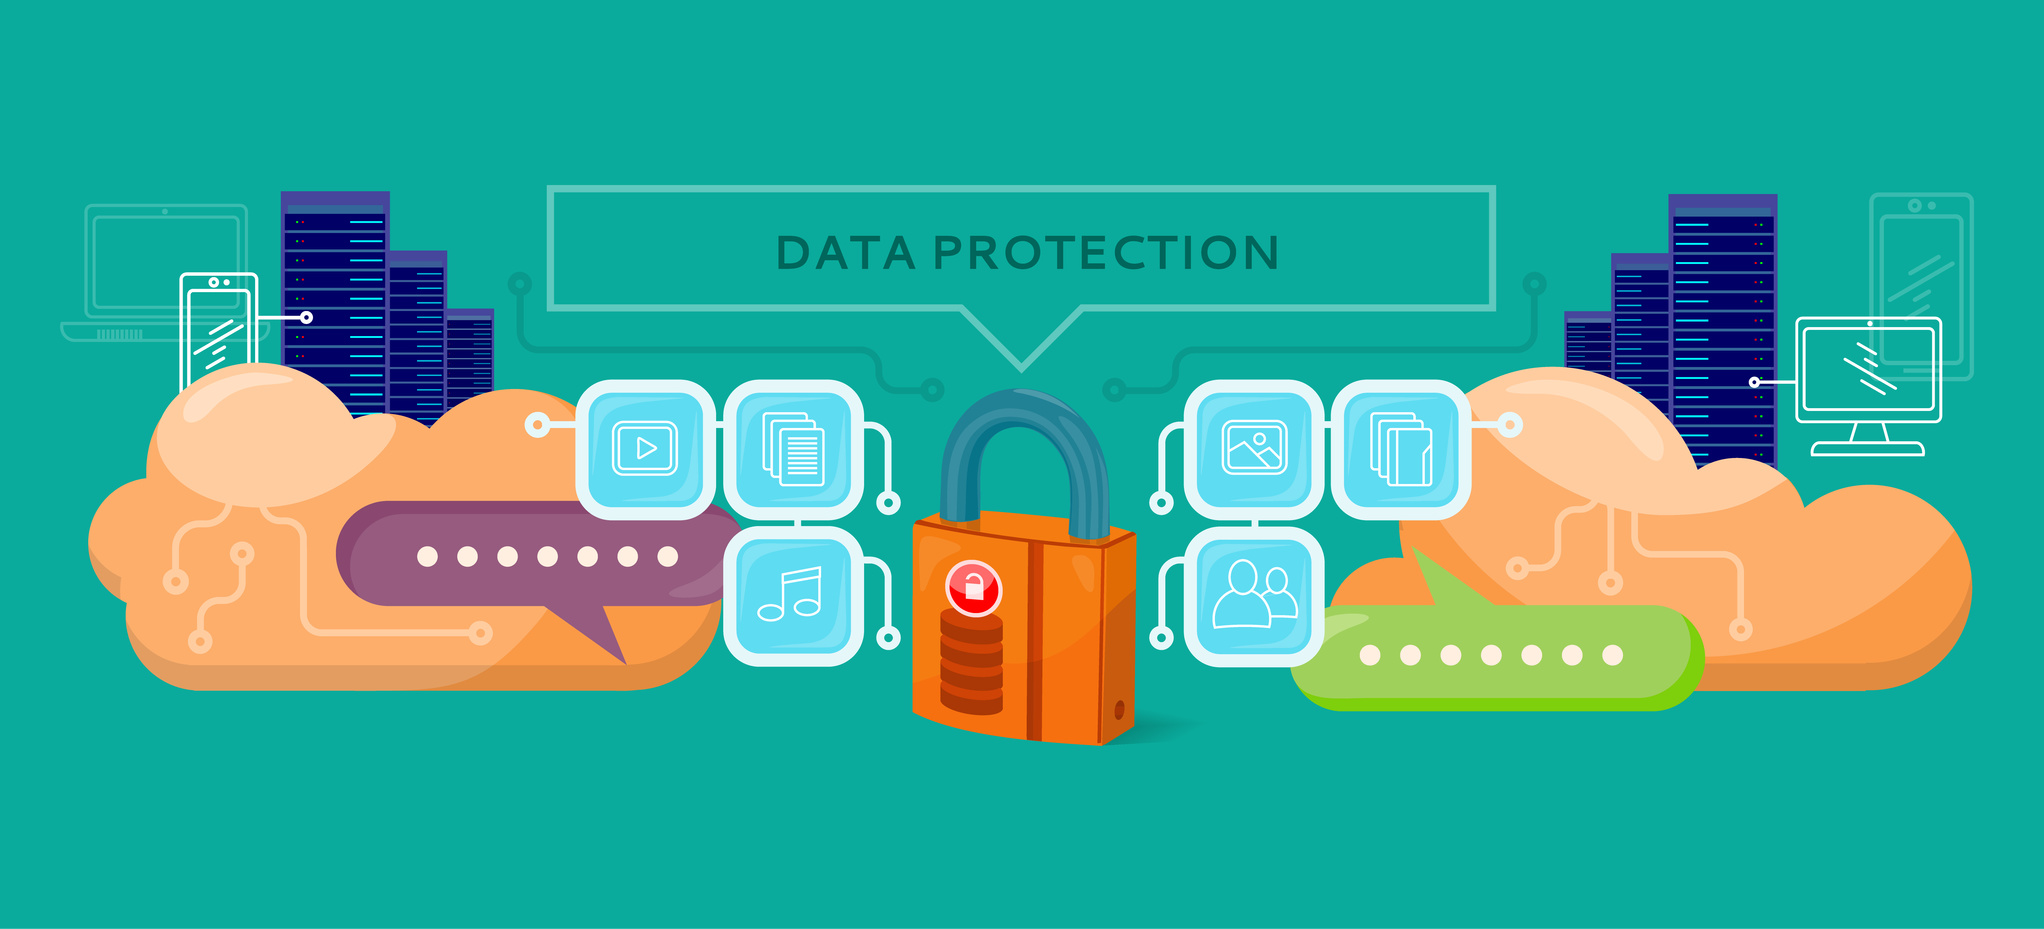 Data Backup - Data Protection